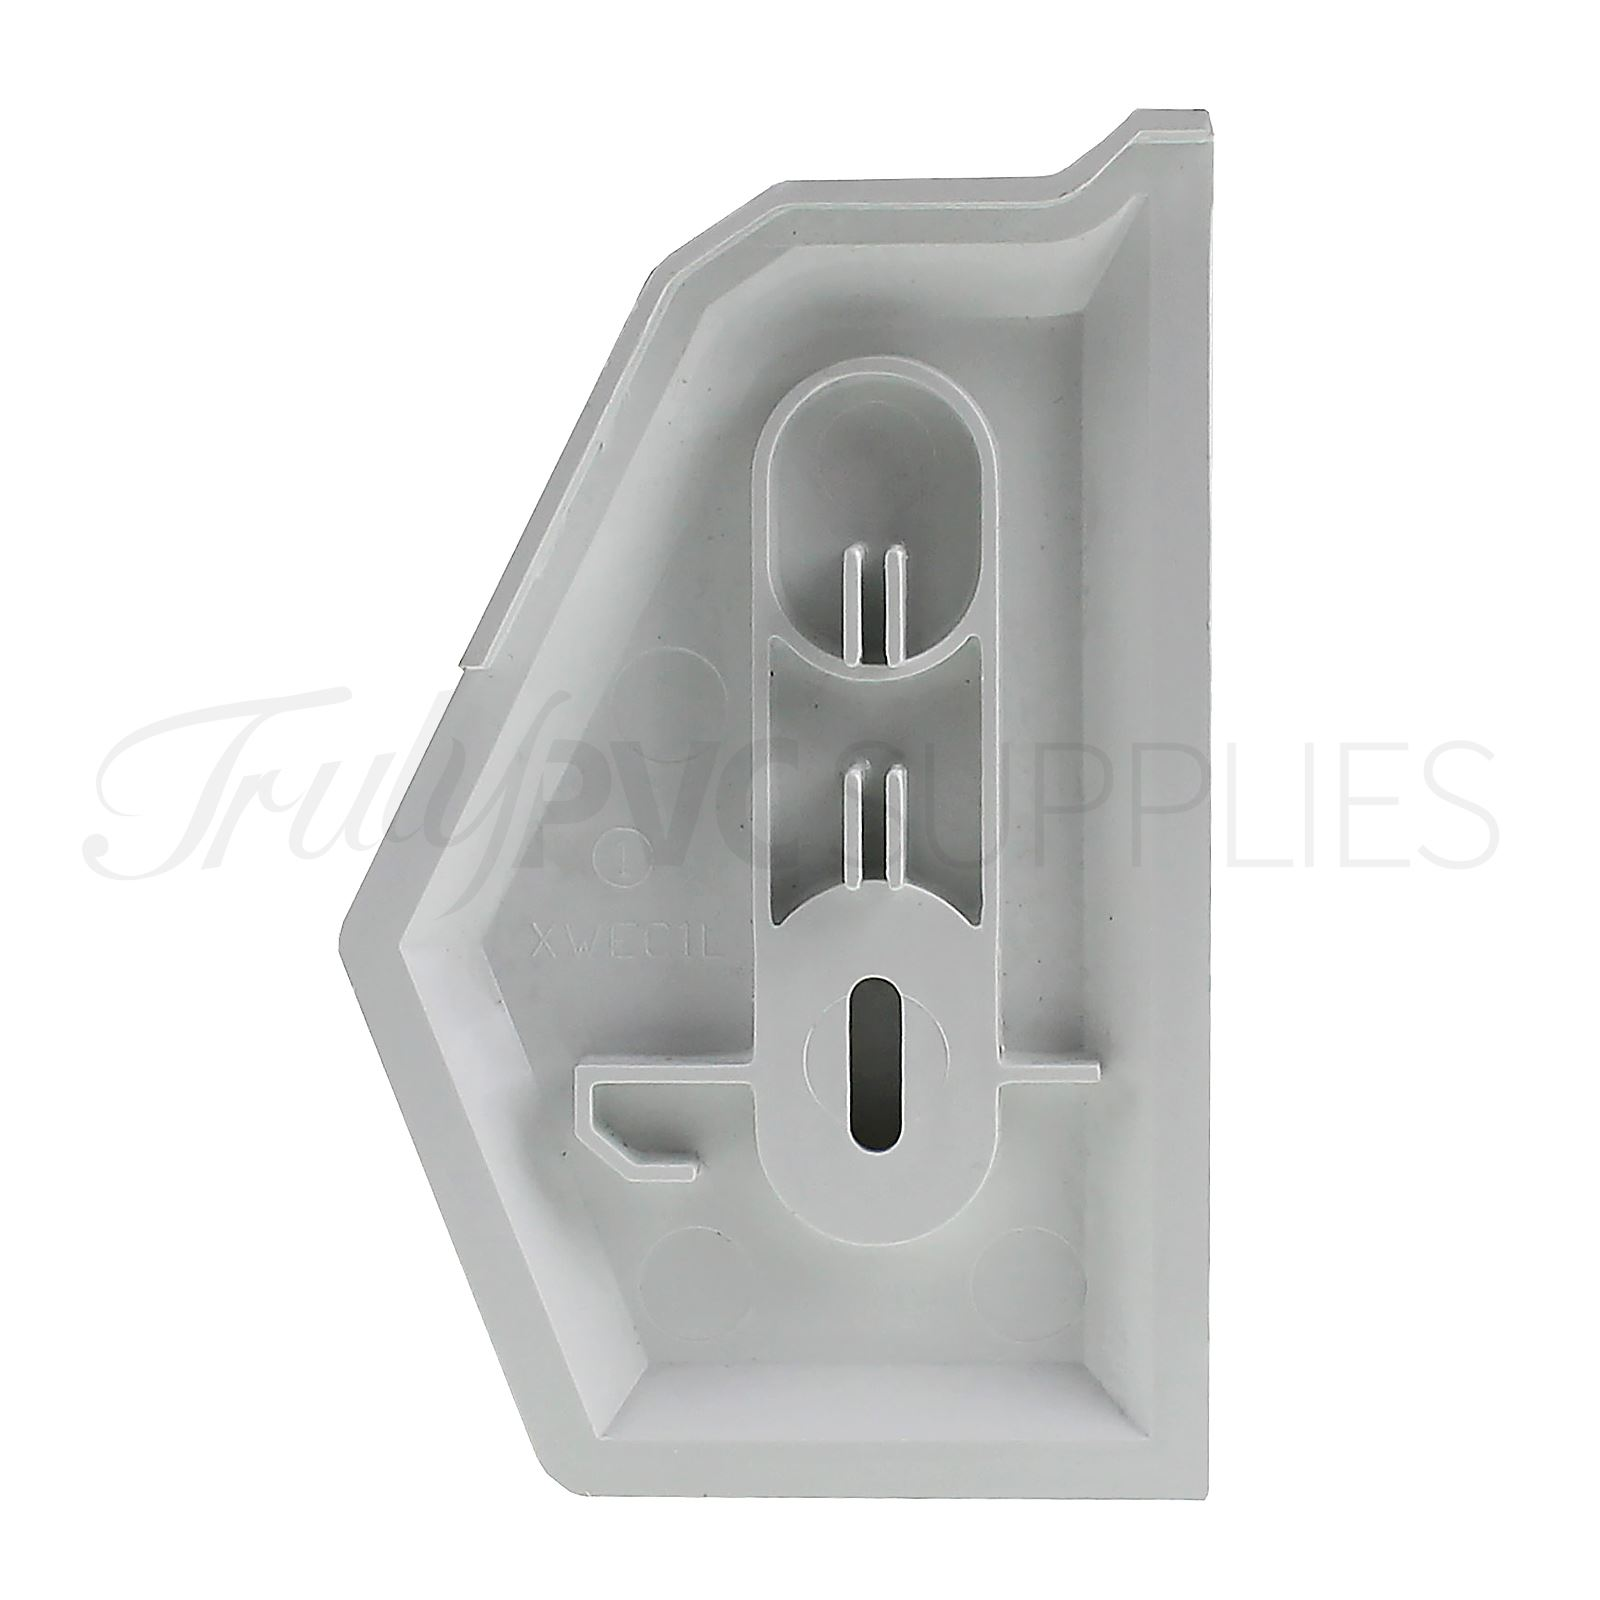 Synseal-Wall-Glazing-Bar-End-Cap-XWEC1-Global-  sc 1 st  eBay & Synseal Wall Glazing Bar End Cap XWEC1 Global Conservatory Roof ... memphite.com